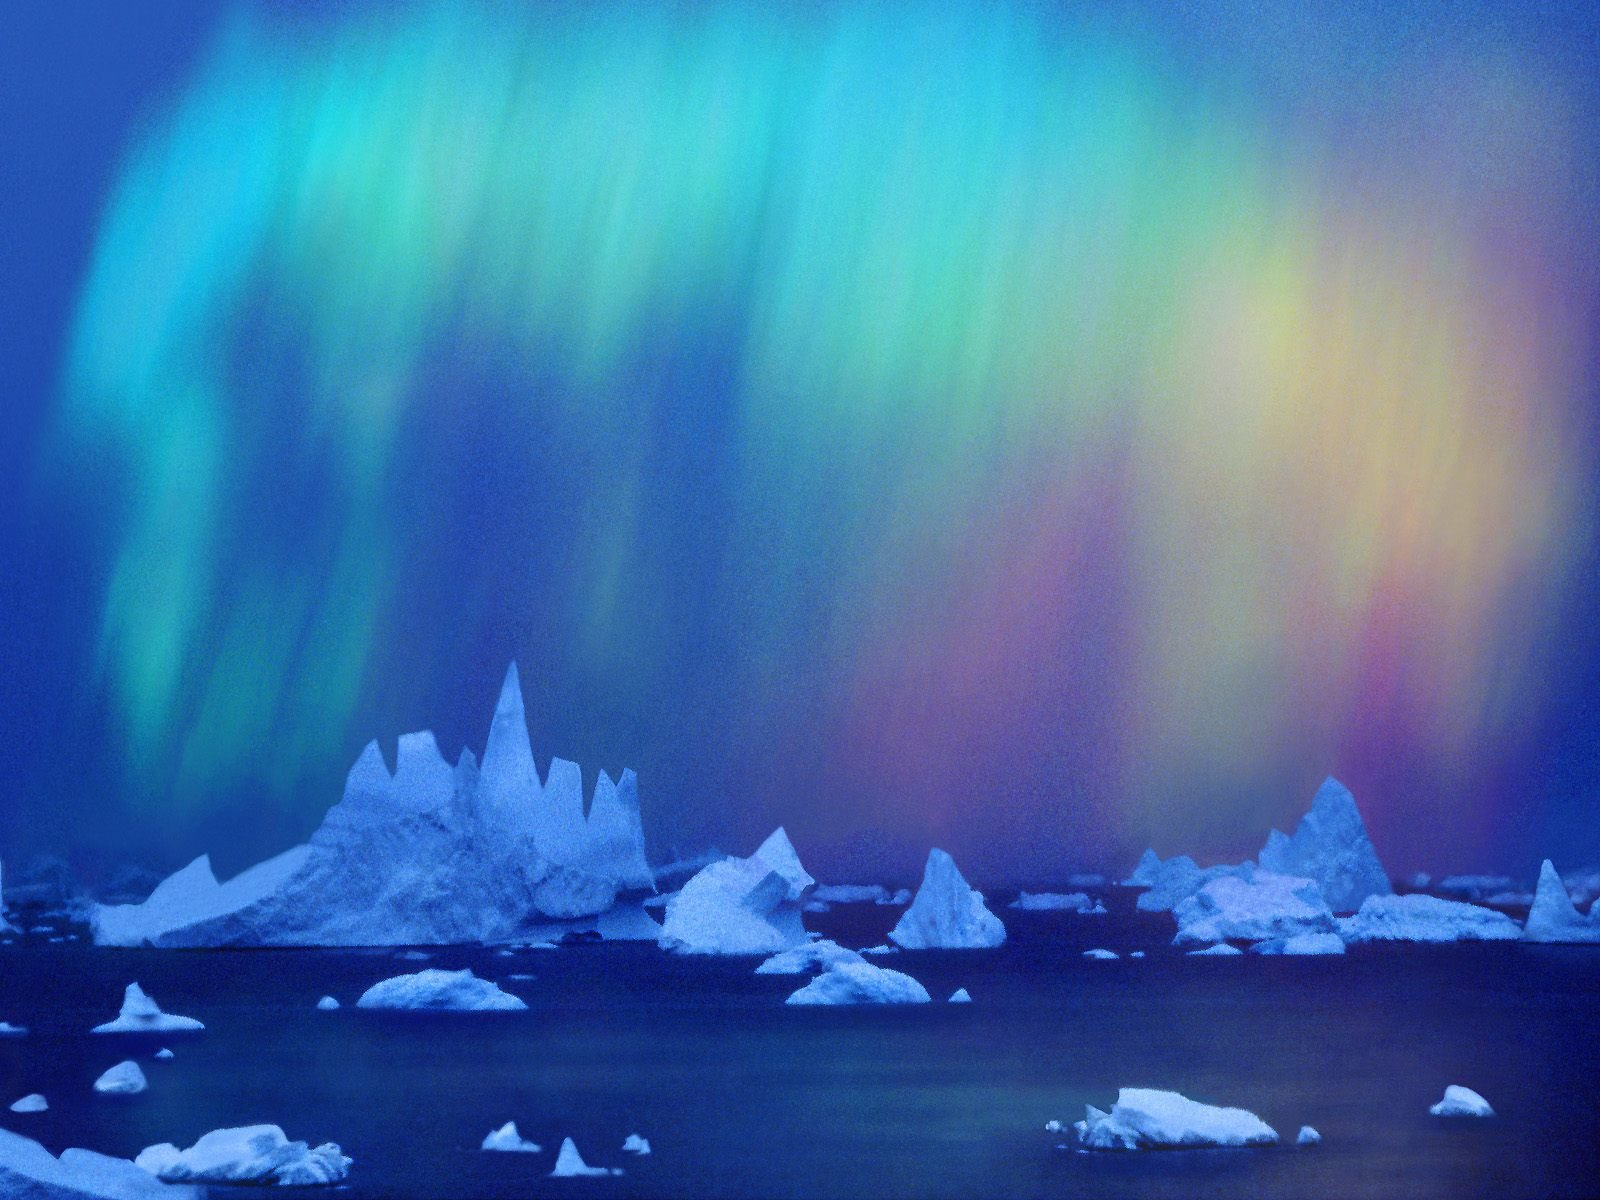 Antarctica clipart background For Polar PPT Backgrounds Holiday